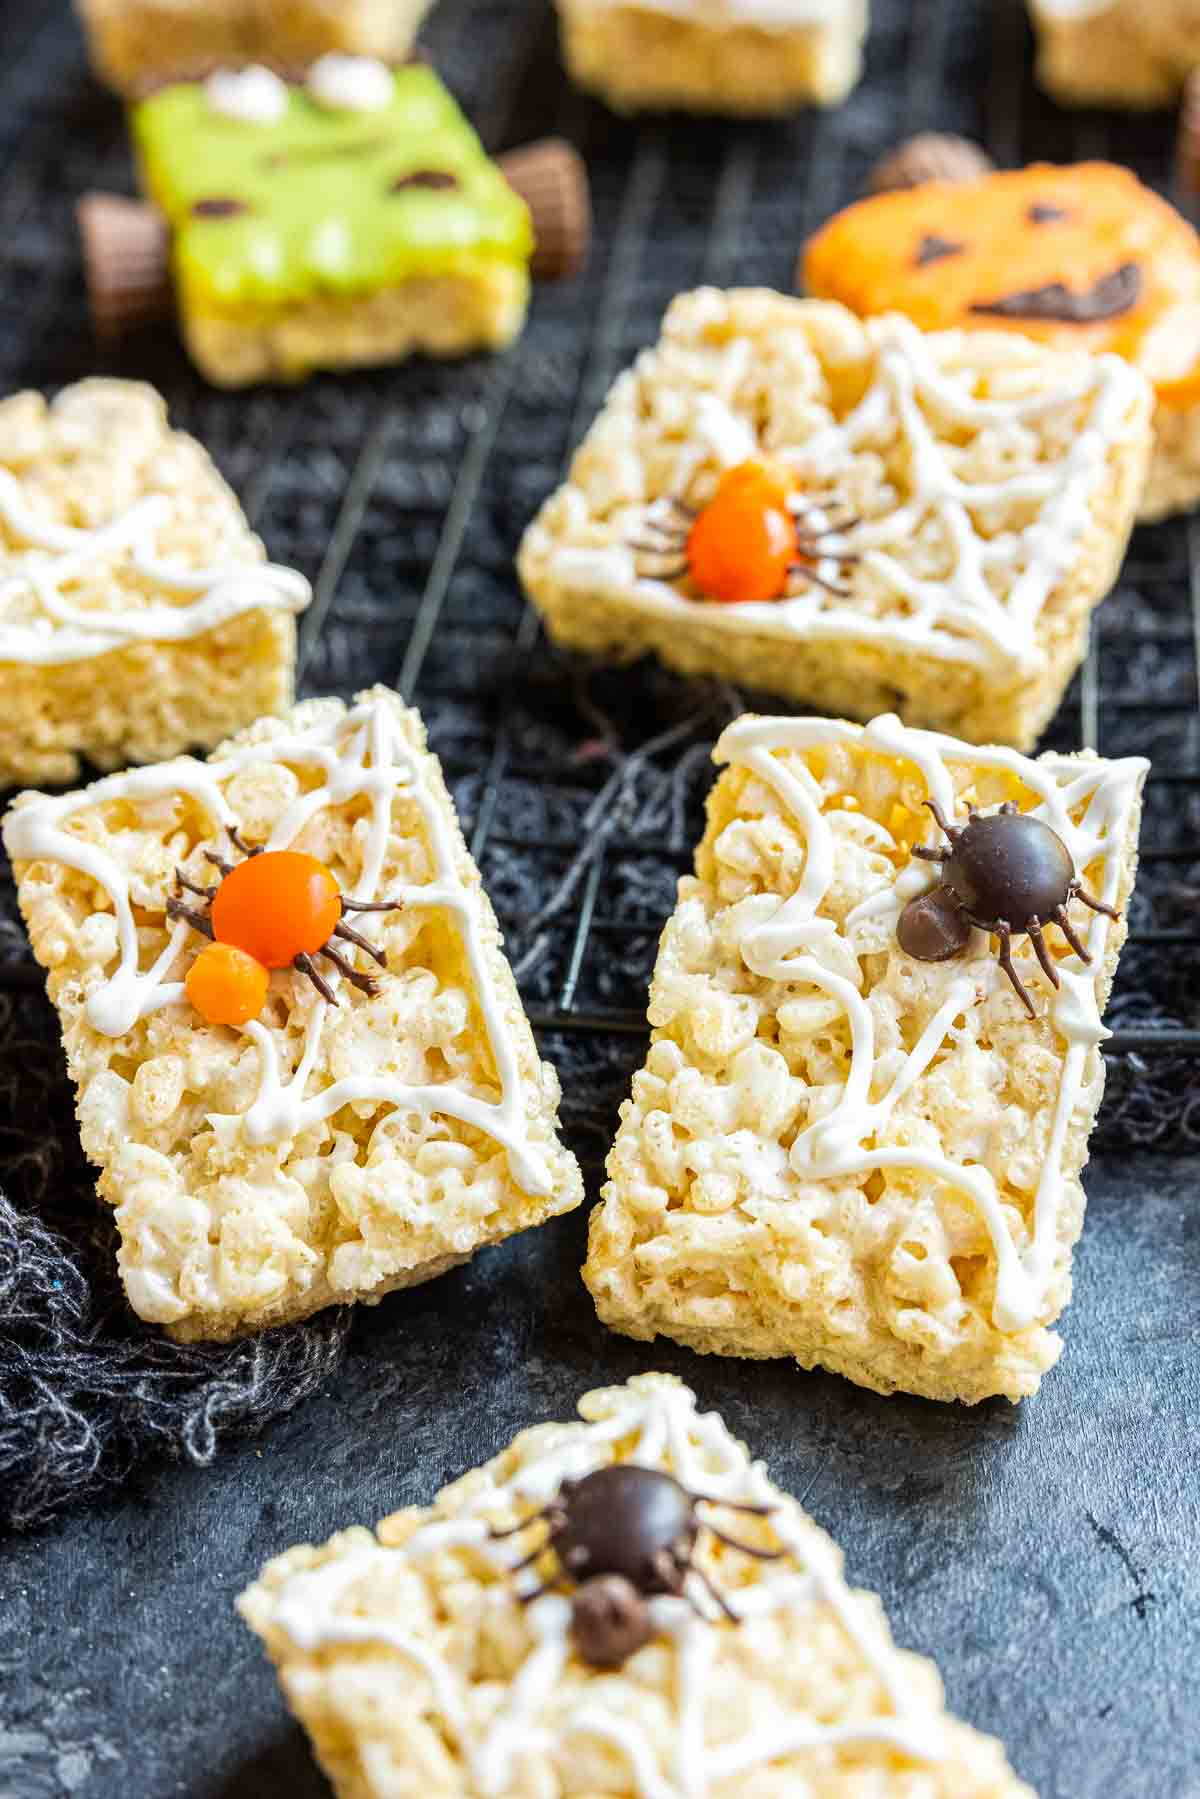 Spider Rice Krispies Treats decorated with colored candy melts